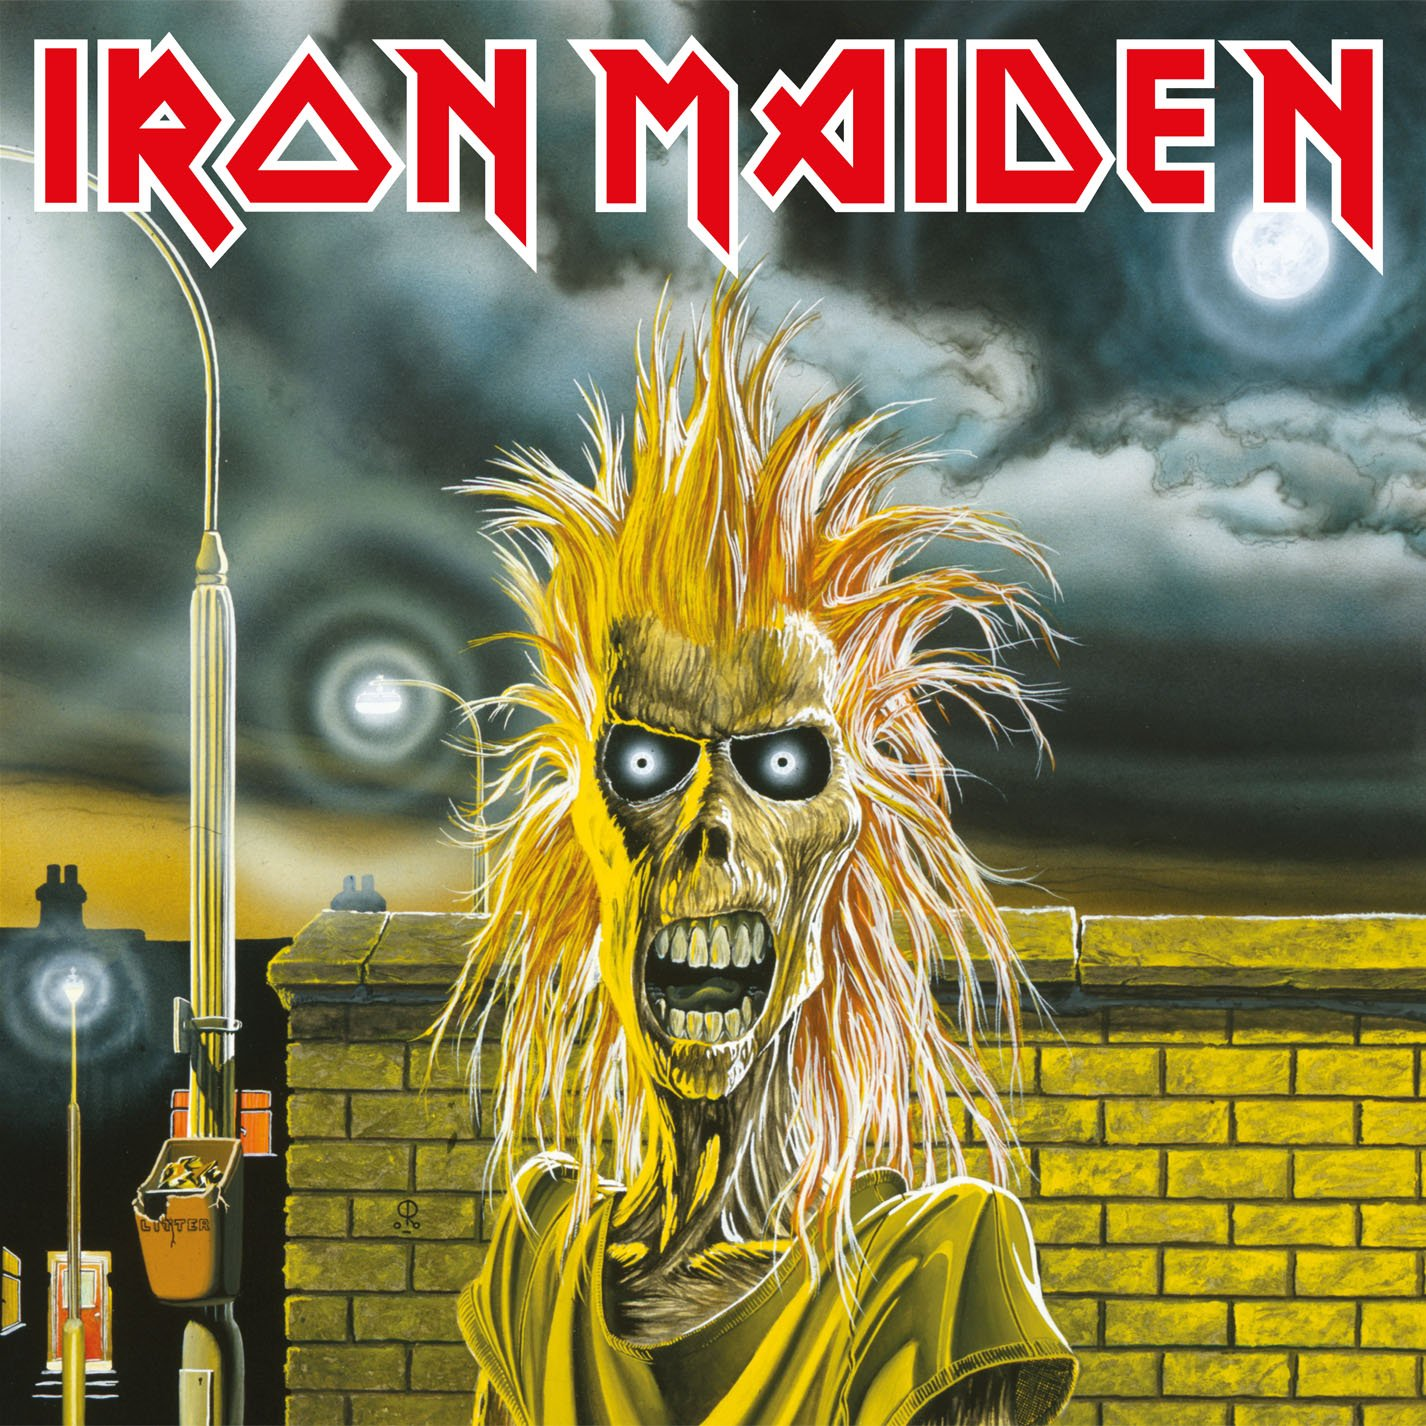 39 Years Ago, Iron Maiden Unleash Debut Album … and Eddie